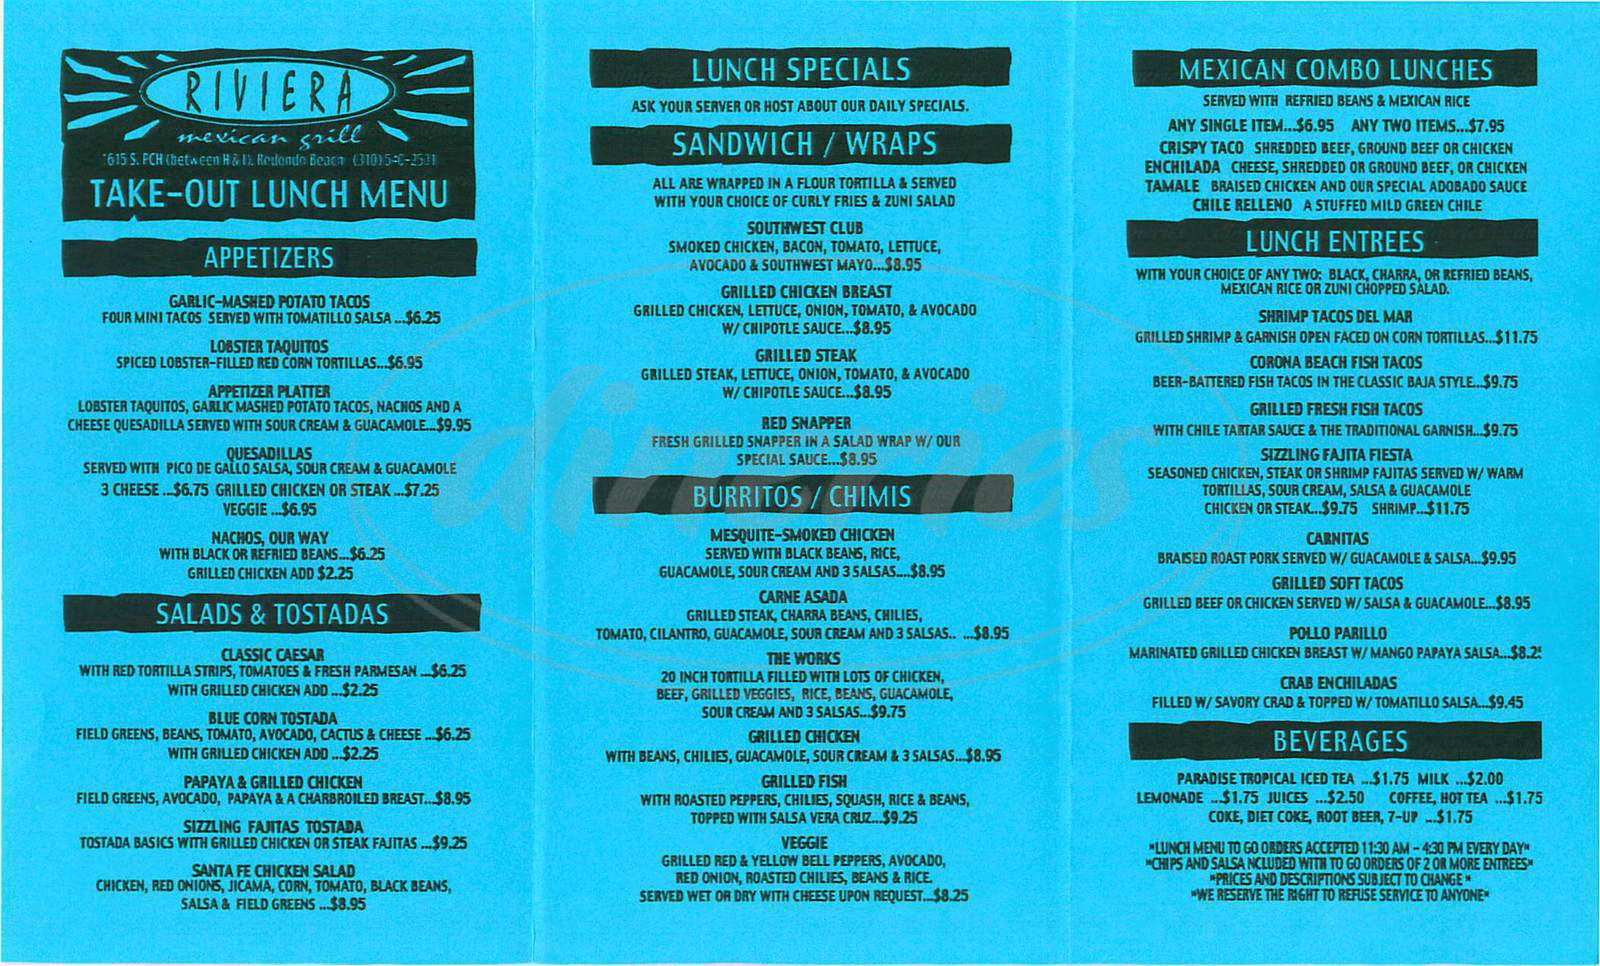 menu for Riviera Mexican Grill